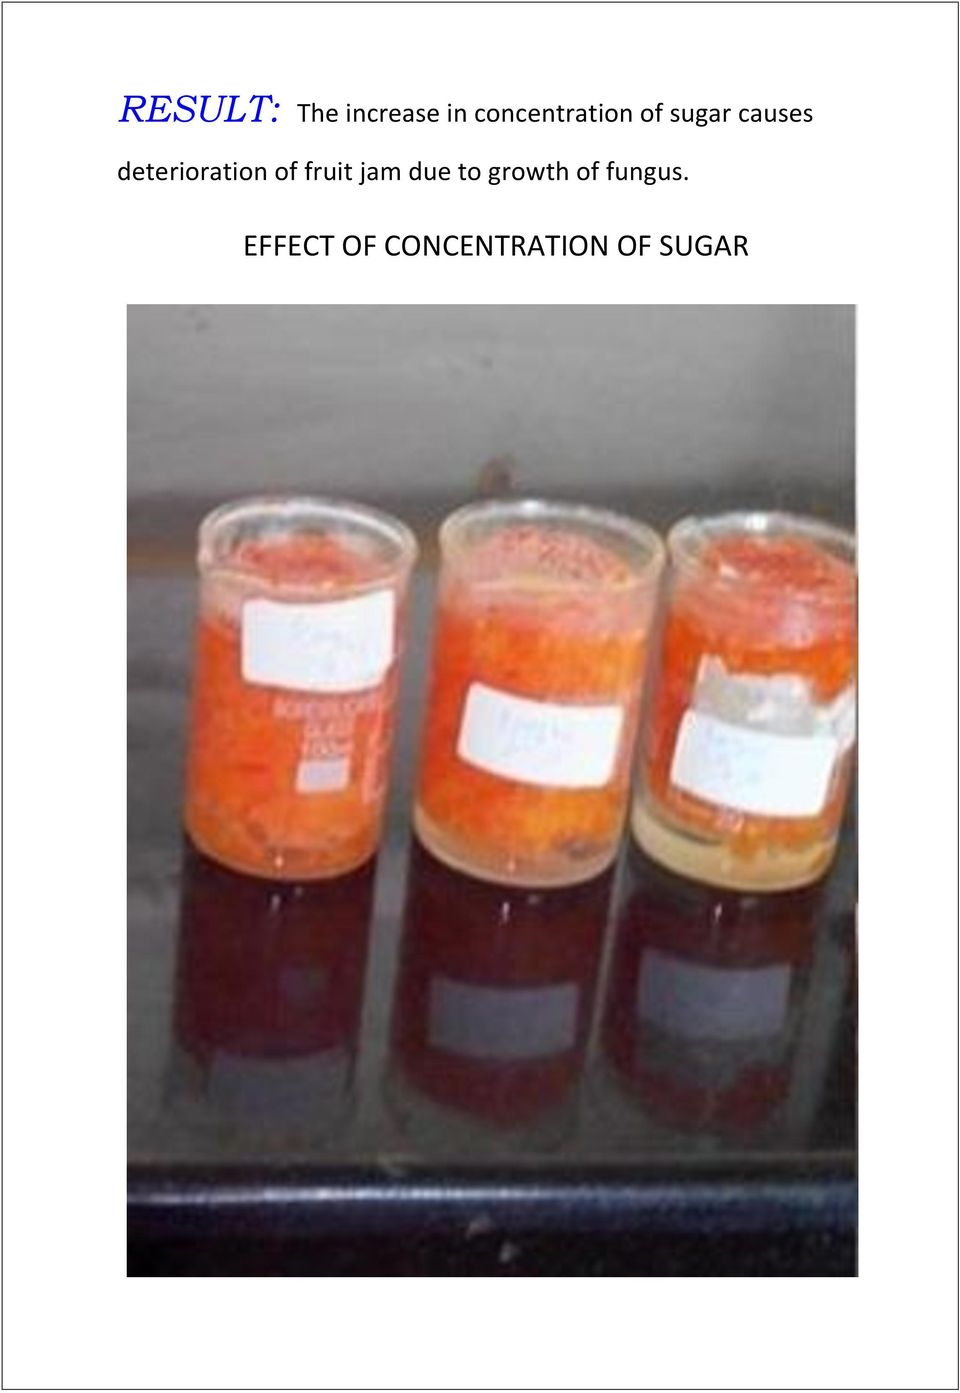 deterioration of fruit jam due to